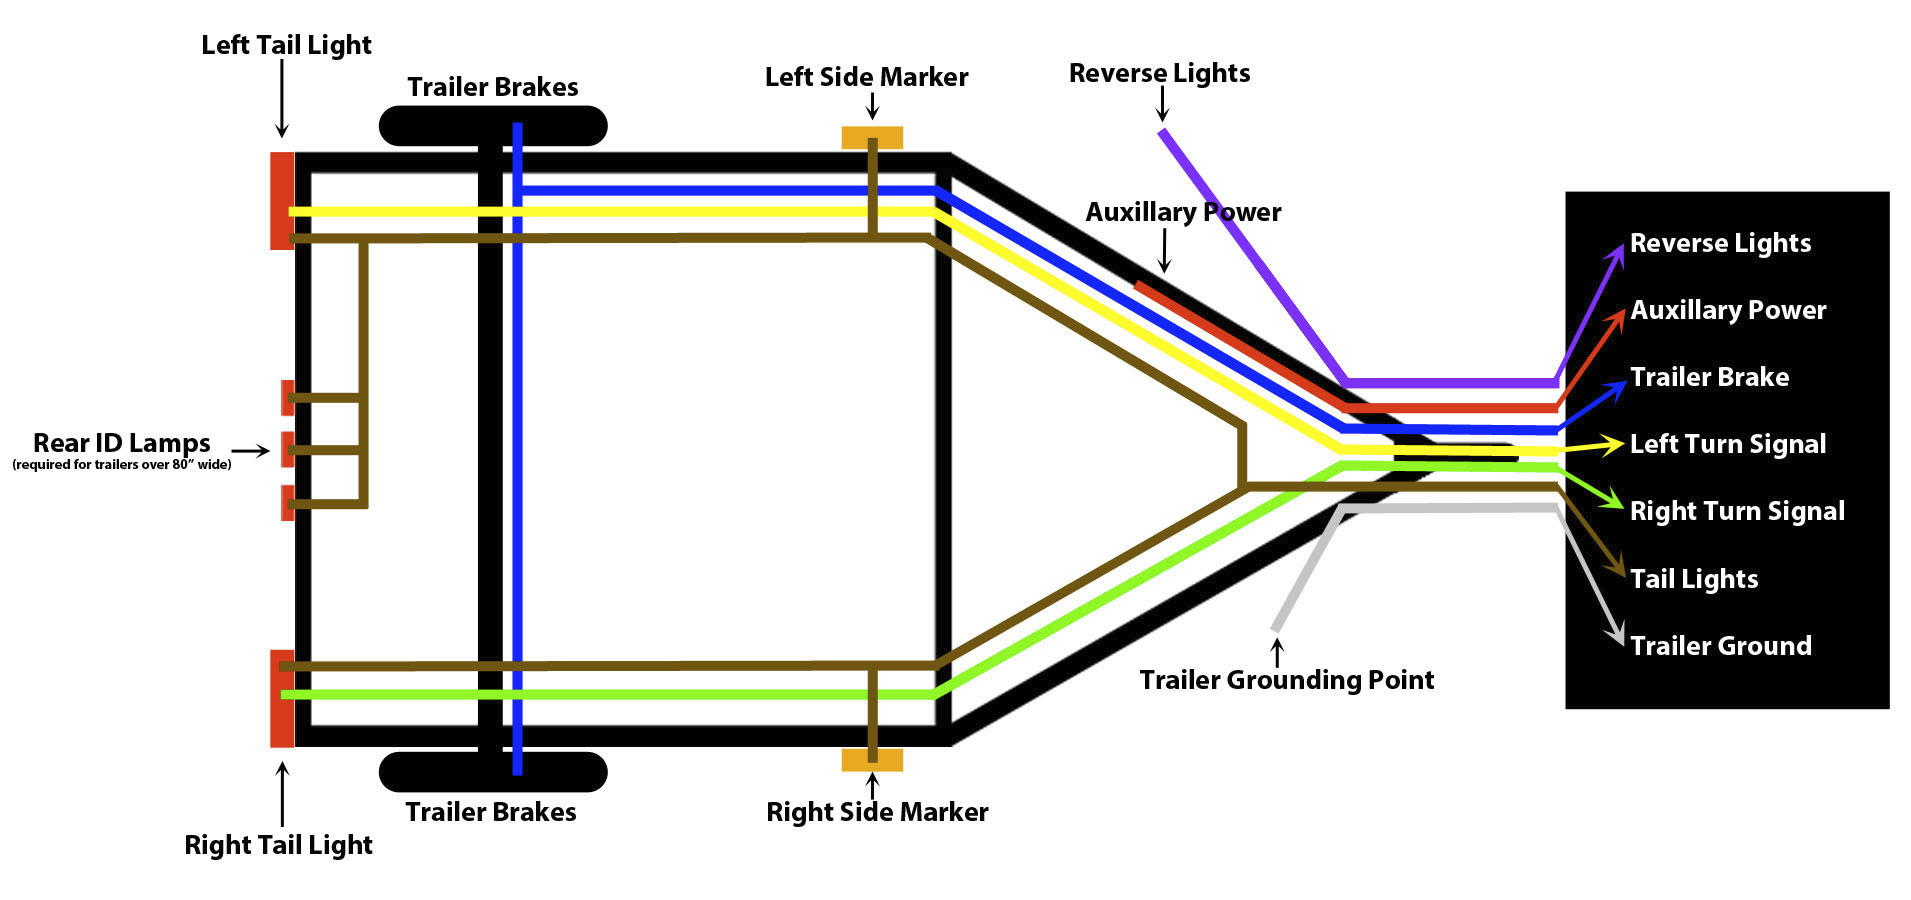 How To Wire Trailer Lights - Trailer Wiring Guide & Videos - Trailer Lights Wiring Diagram 5 Way